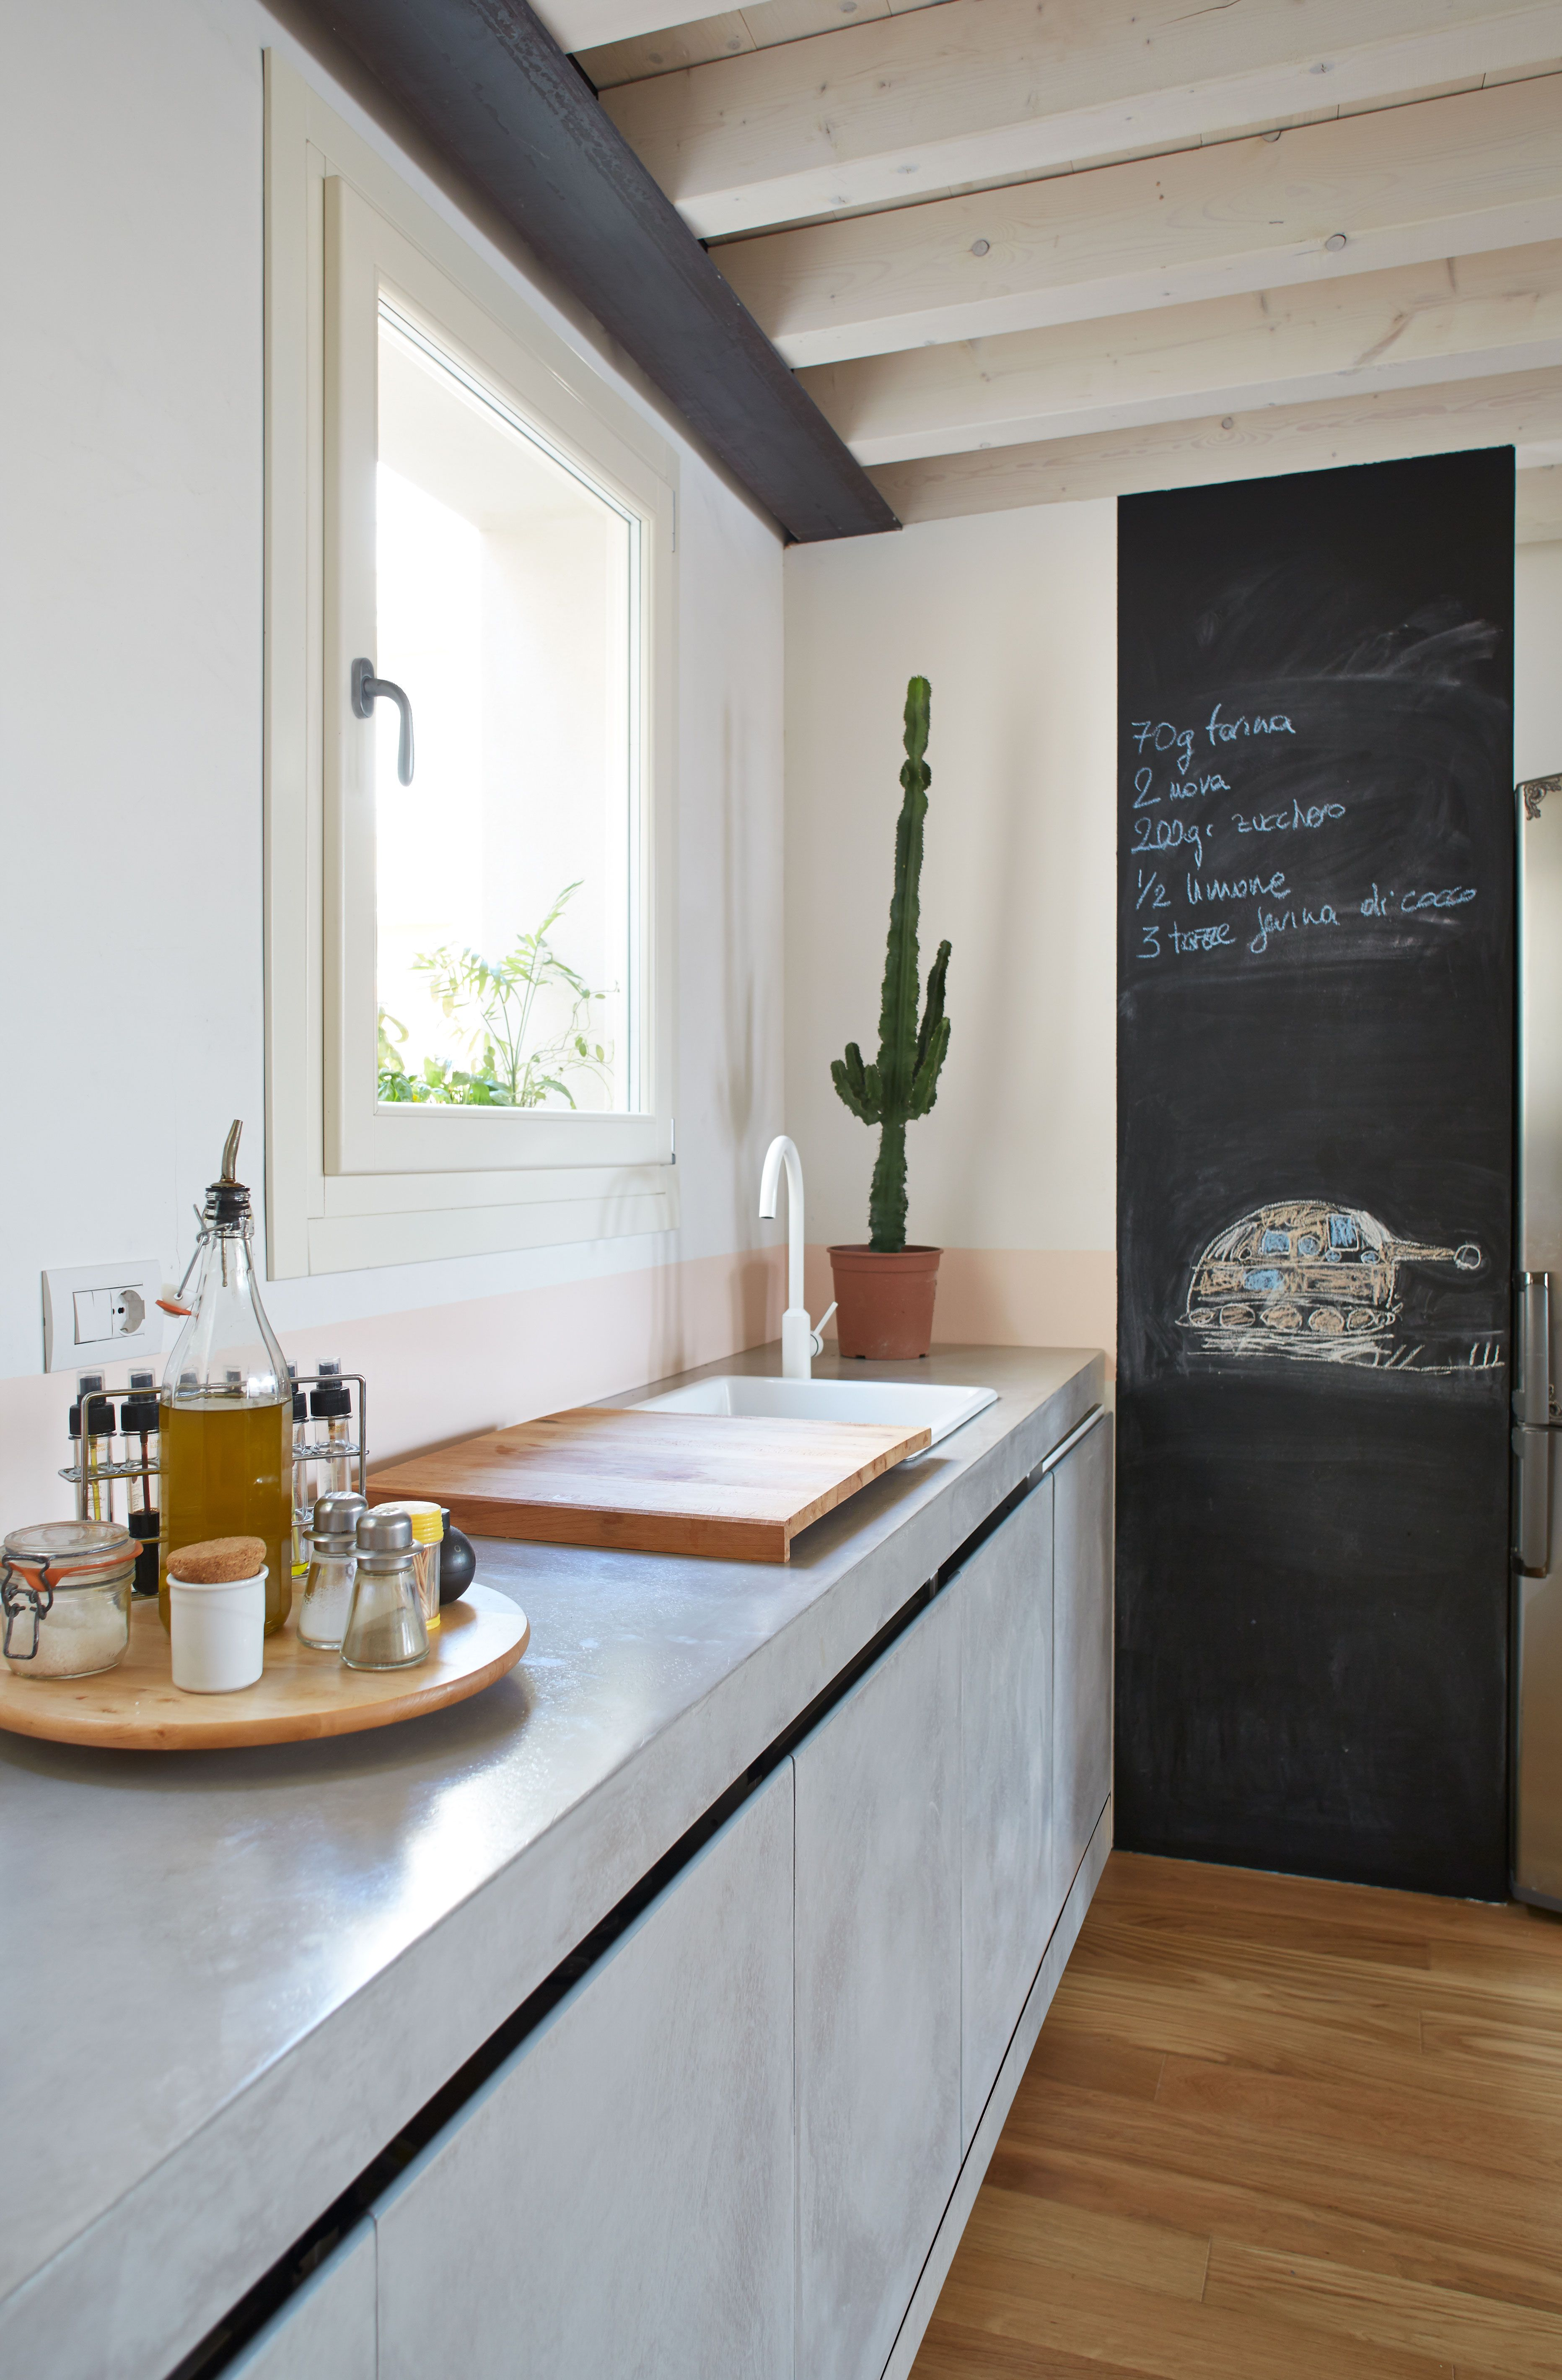 new kitchen surface #microtopping #trends http://www.idealwork.com ...